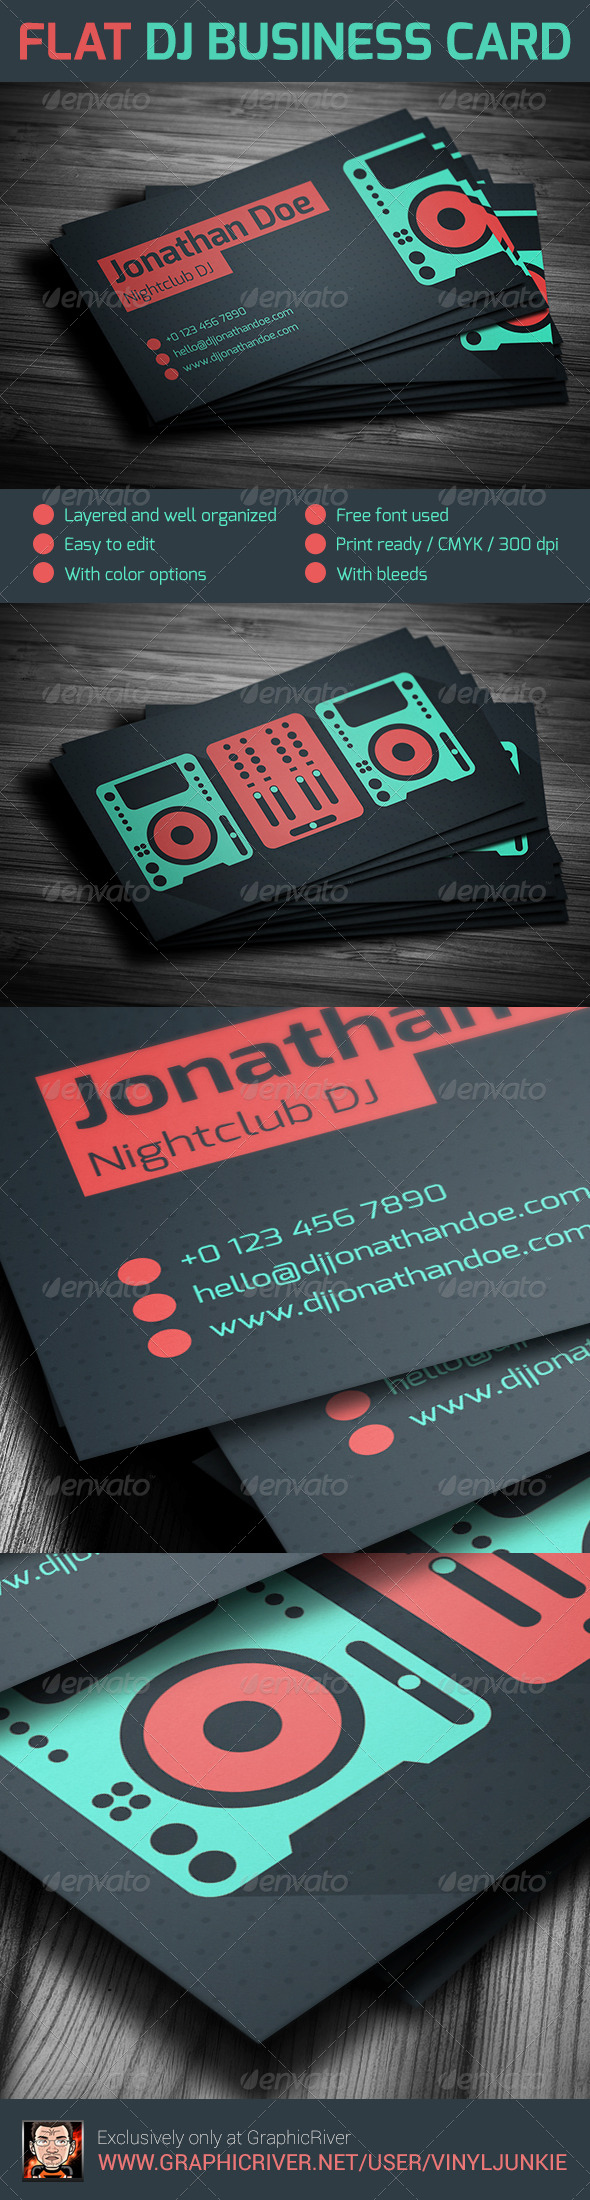 GraphicRiver Flat DJ Business Card 5953339